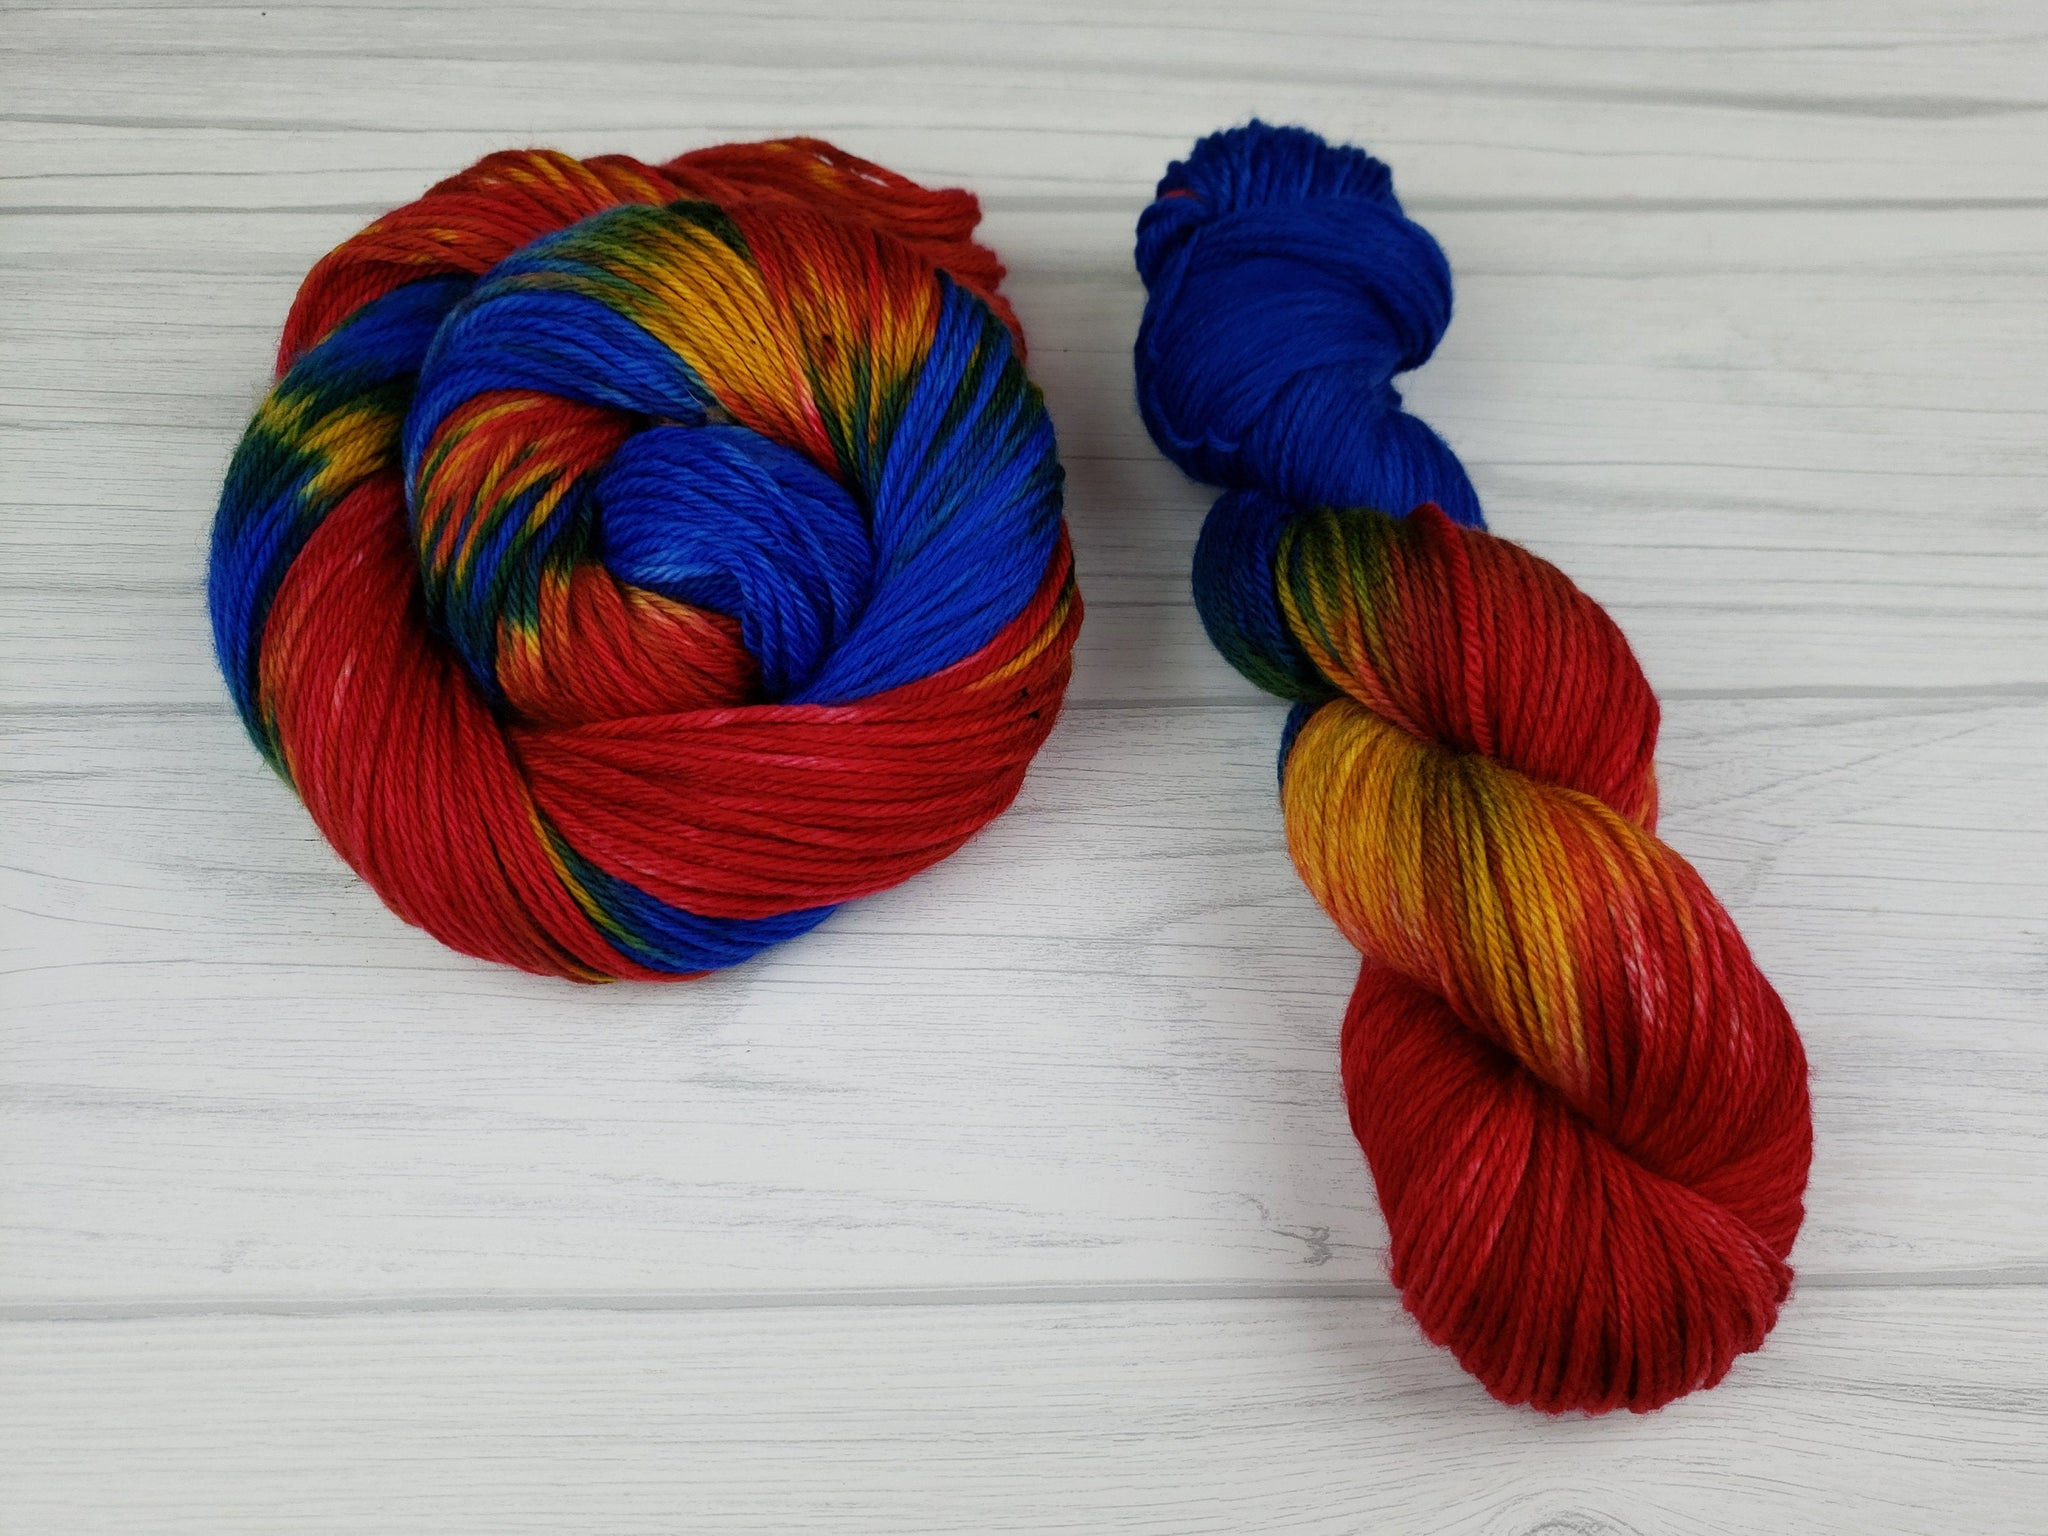 Captain Marvel, Hand Dyed Yarn in Sock Weight - Spindle warps yarns